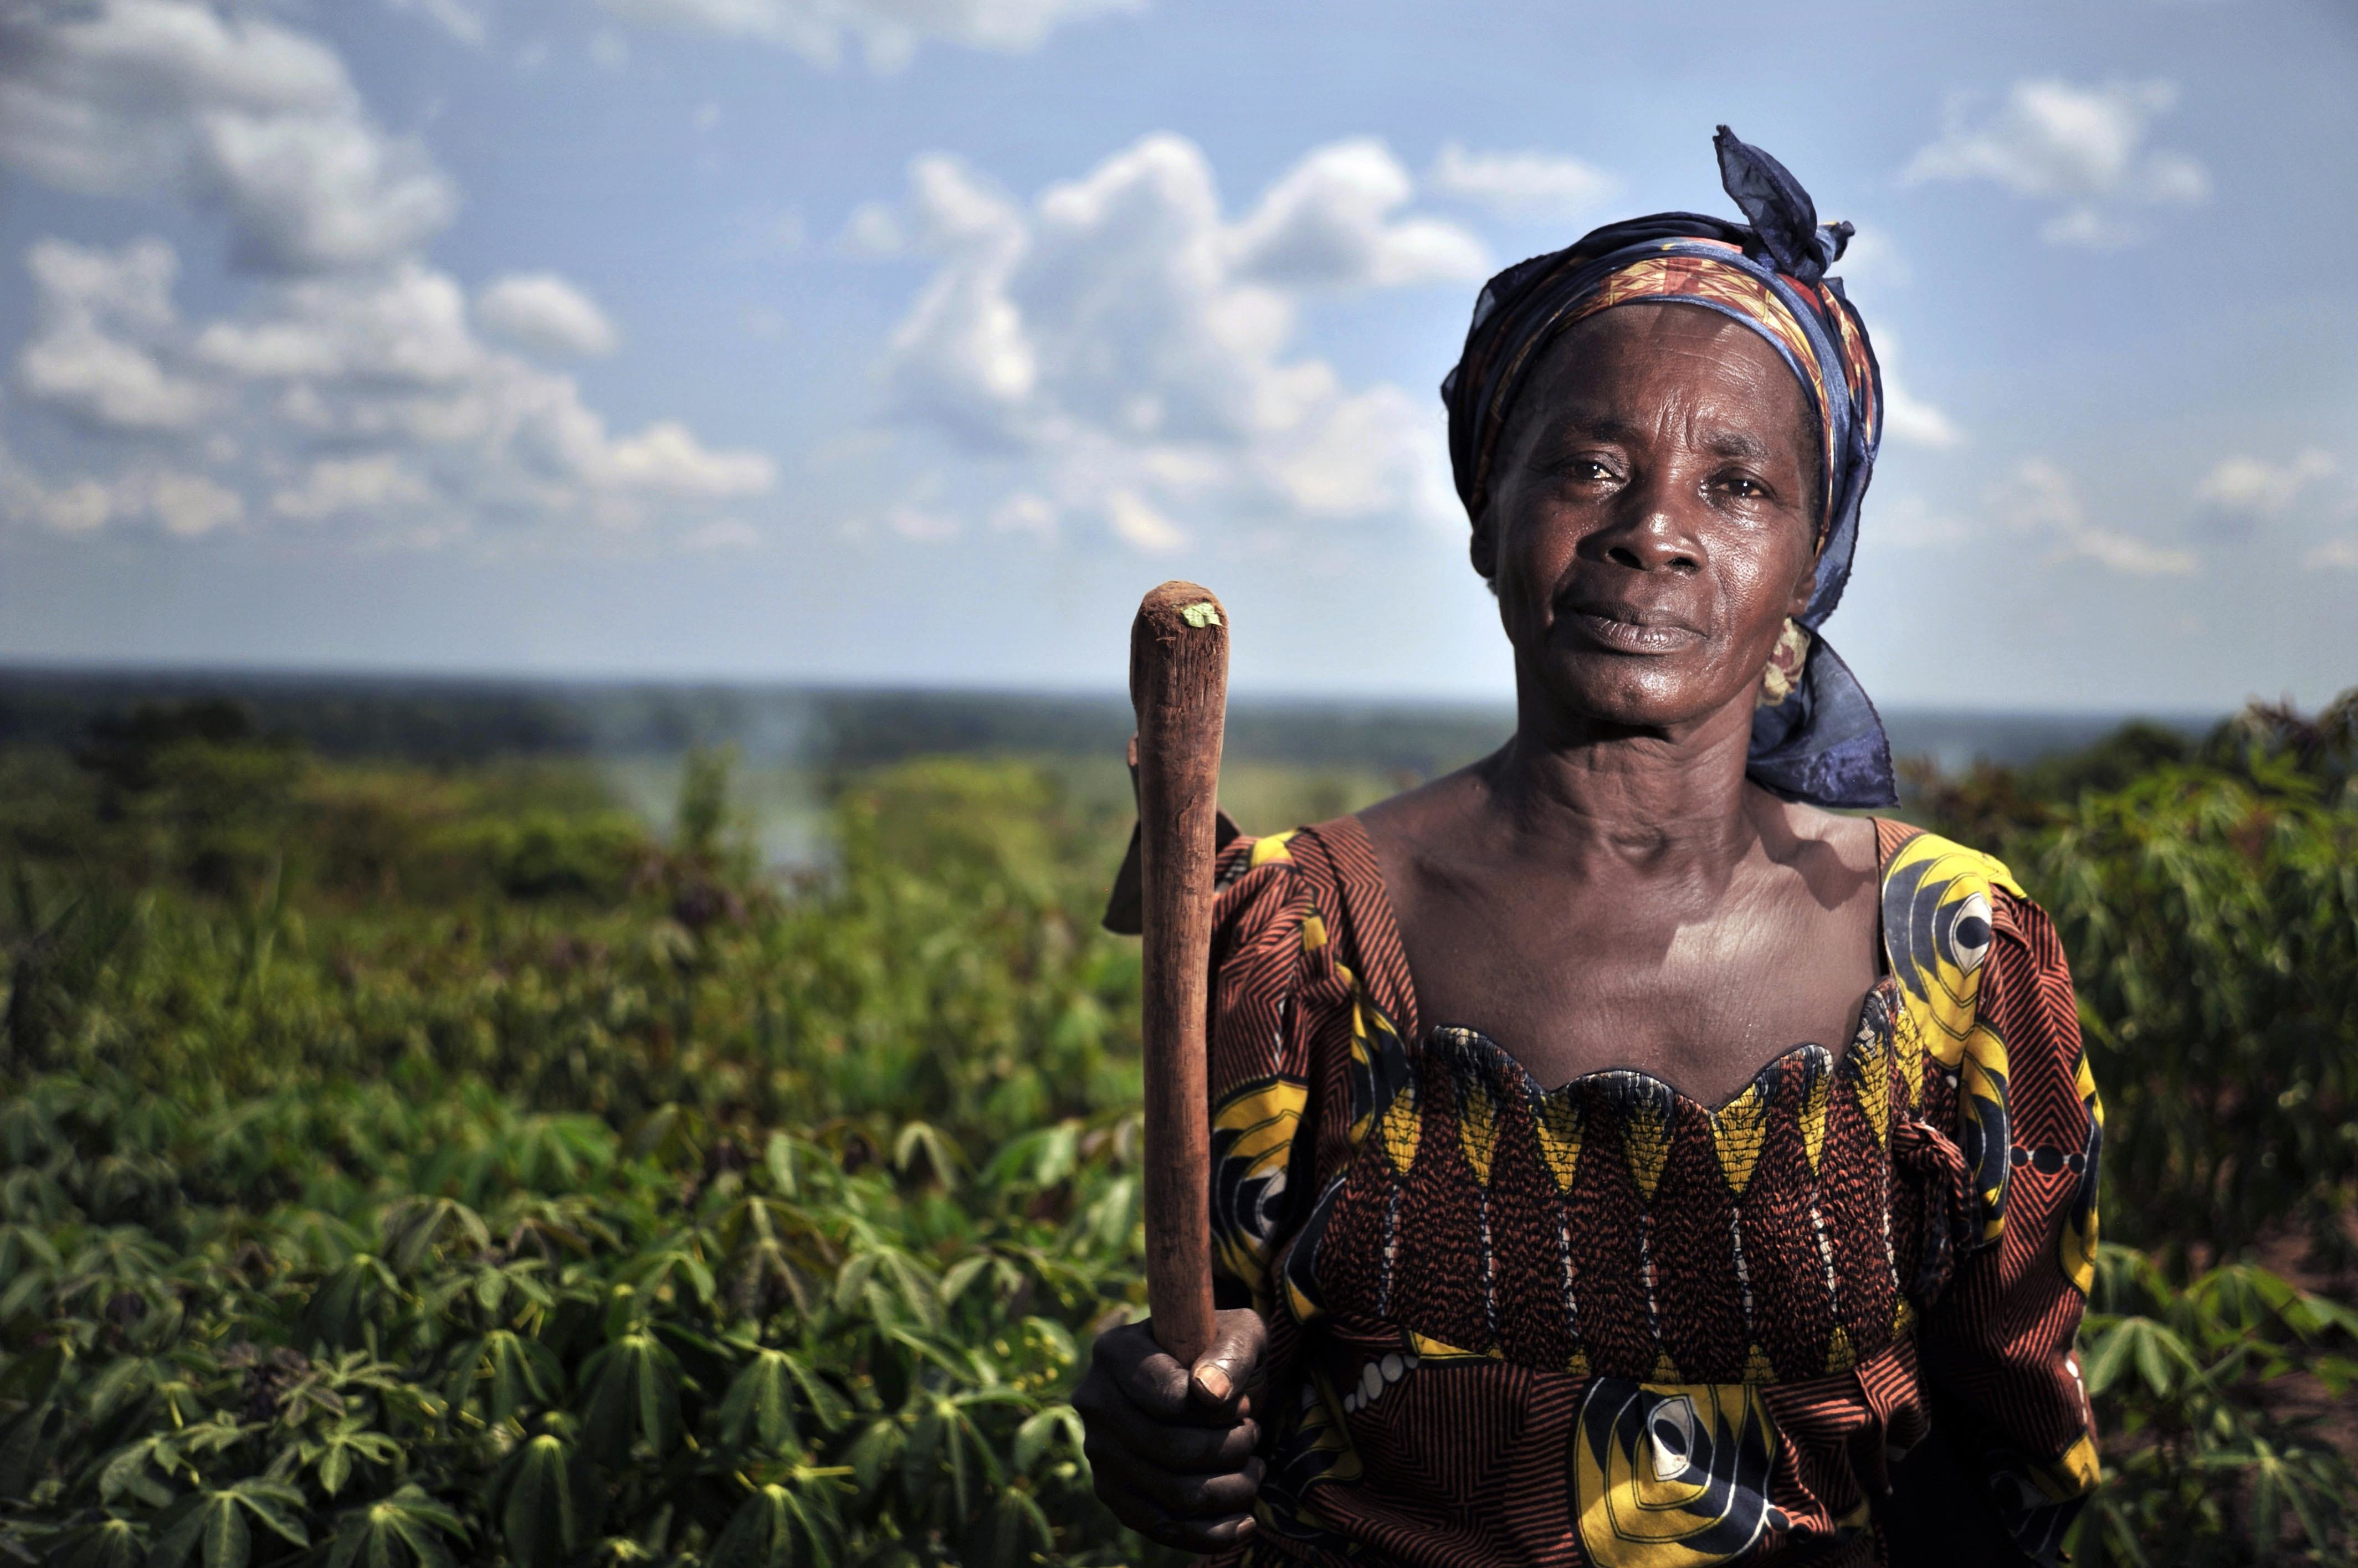 Family farmers must remain central to agroecology scale-up